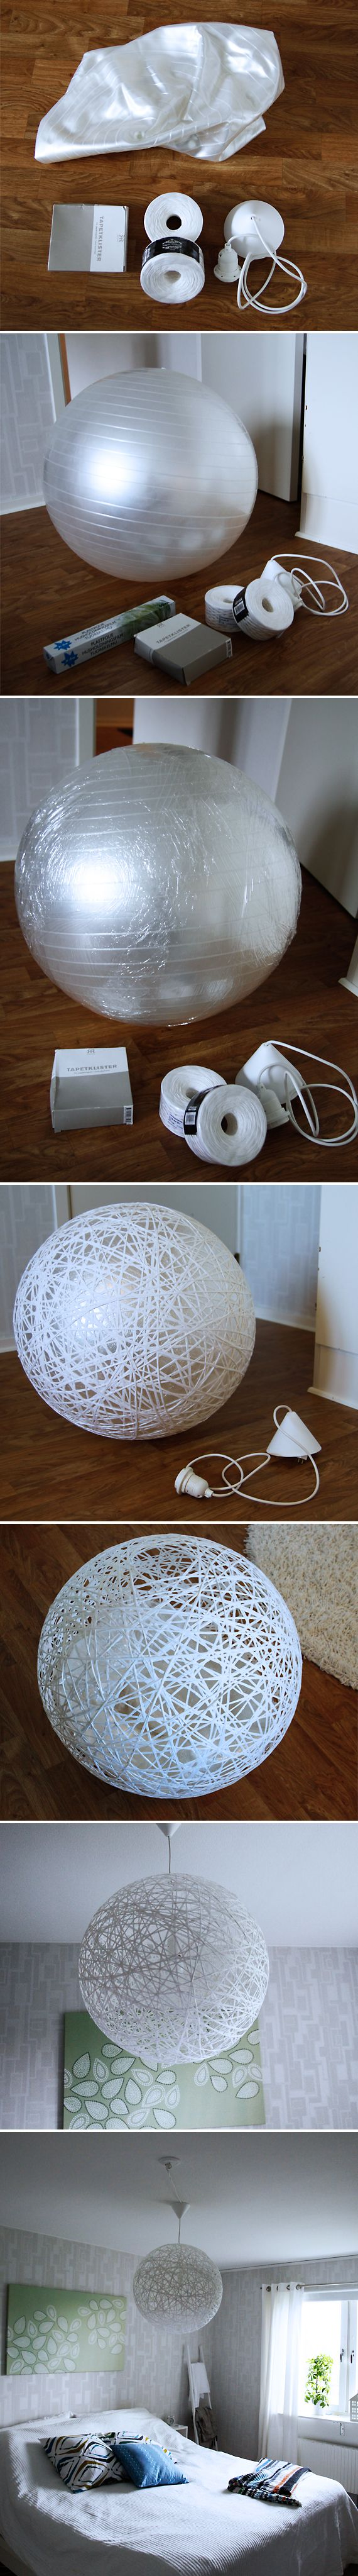 string lamp. whoaa